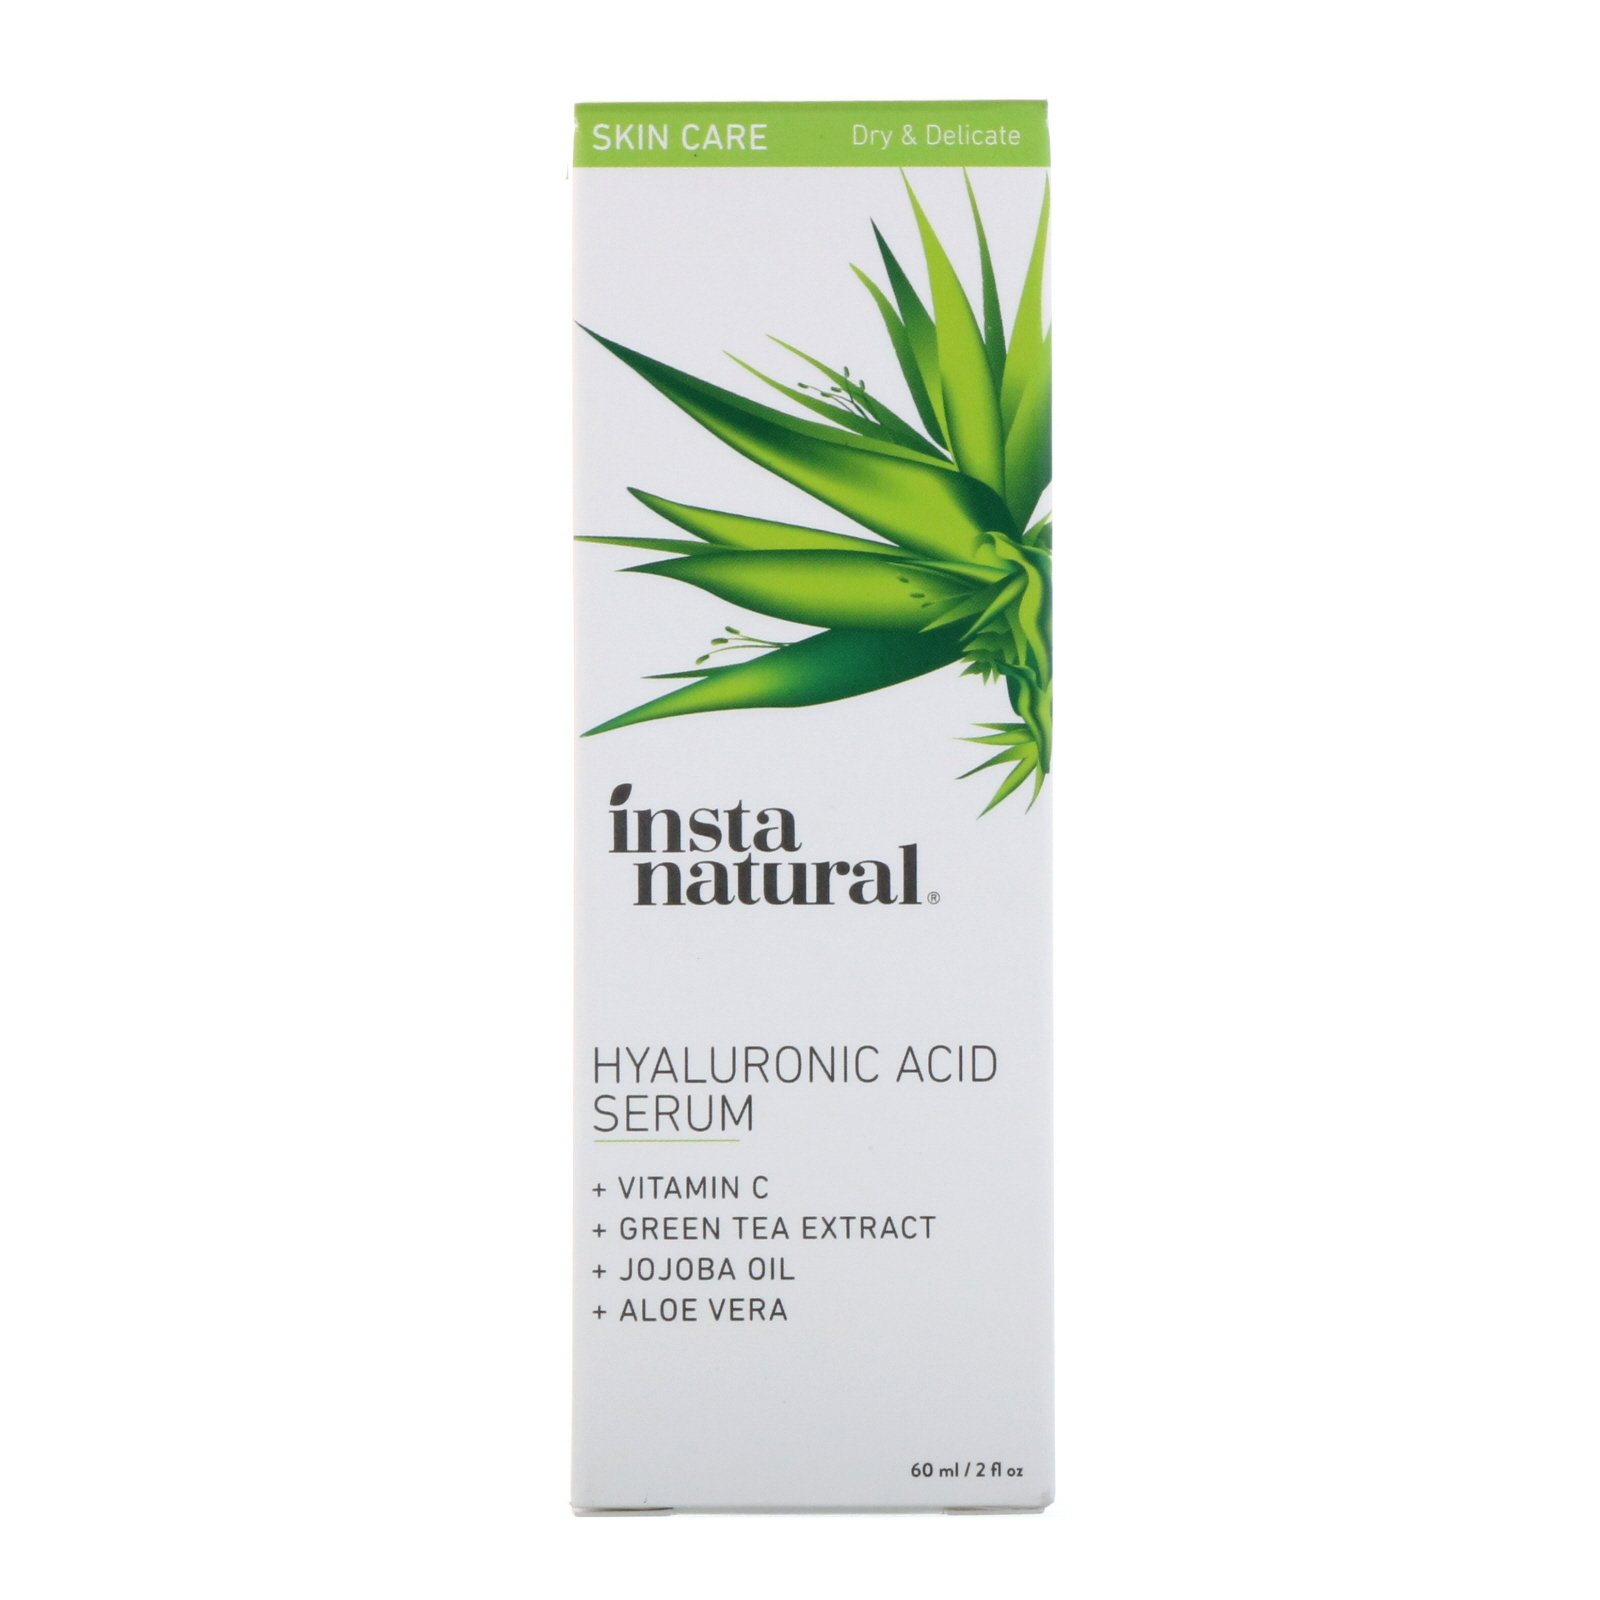 36daa3252bf InstaNatural, Hyaluronic Acid Serum with Vitamin C, 2 fl oz (60 ml ...